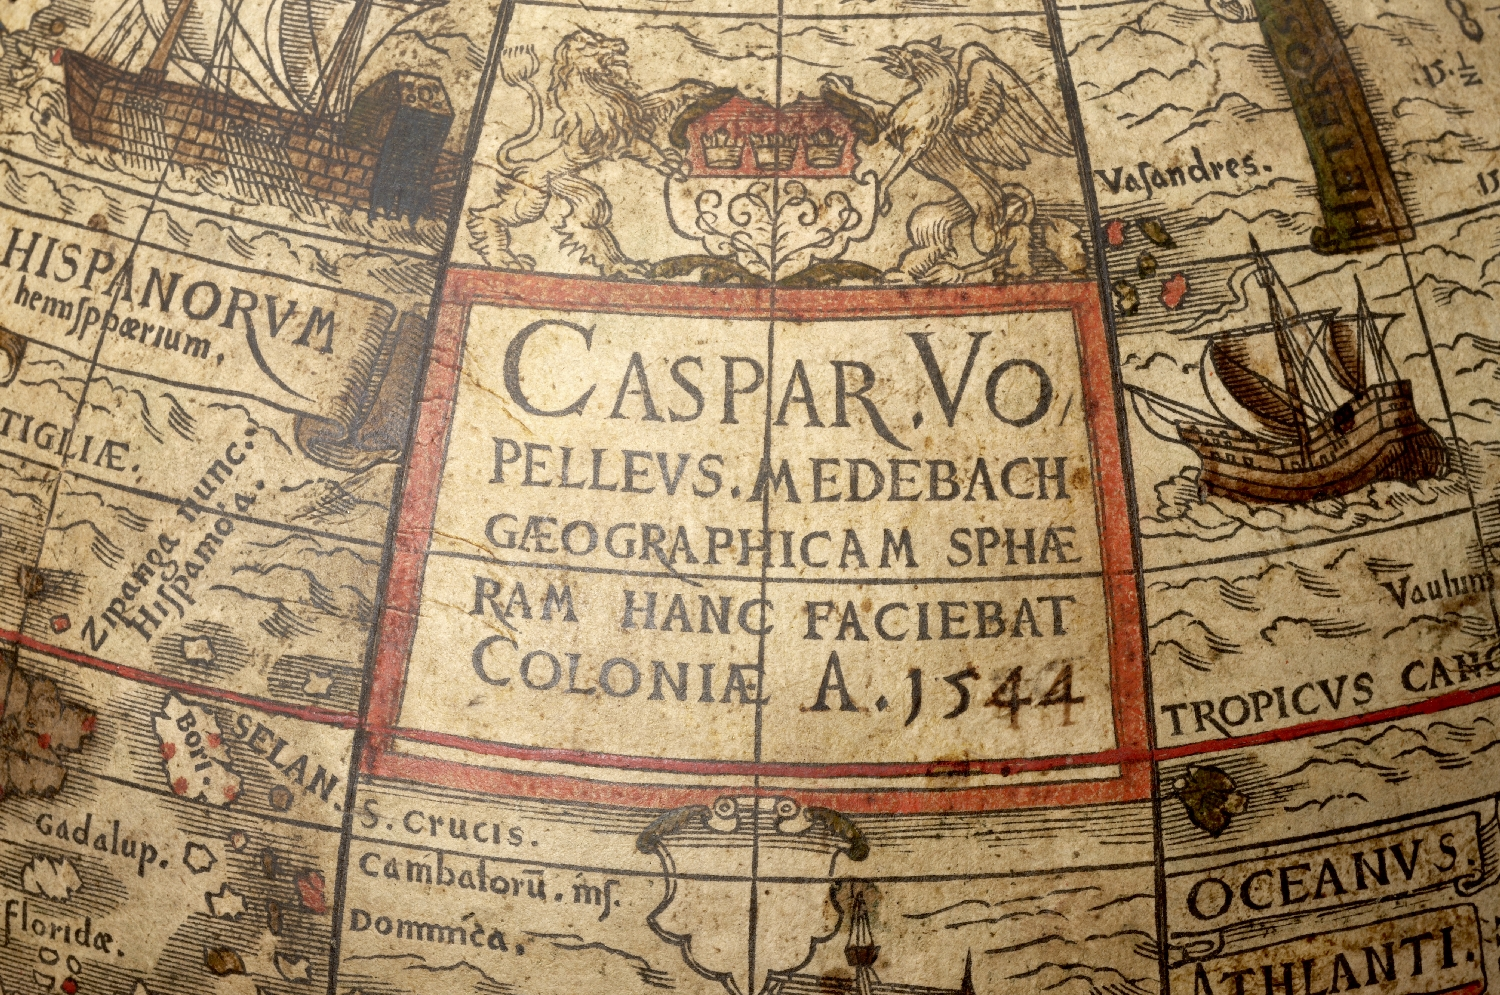 World globe, Caspar Vopelius, Cologne, 1544, cardboard, plaster, copper engraving on paper, wood, inv. no. K 1630-49